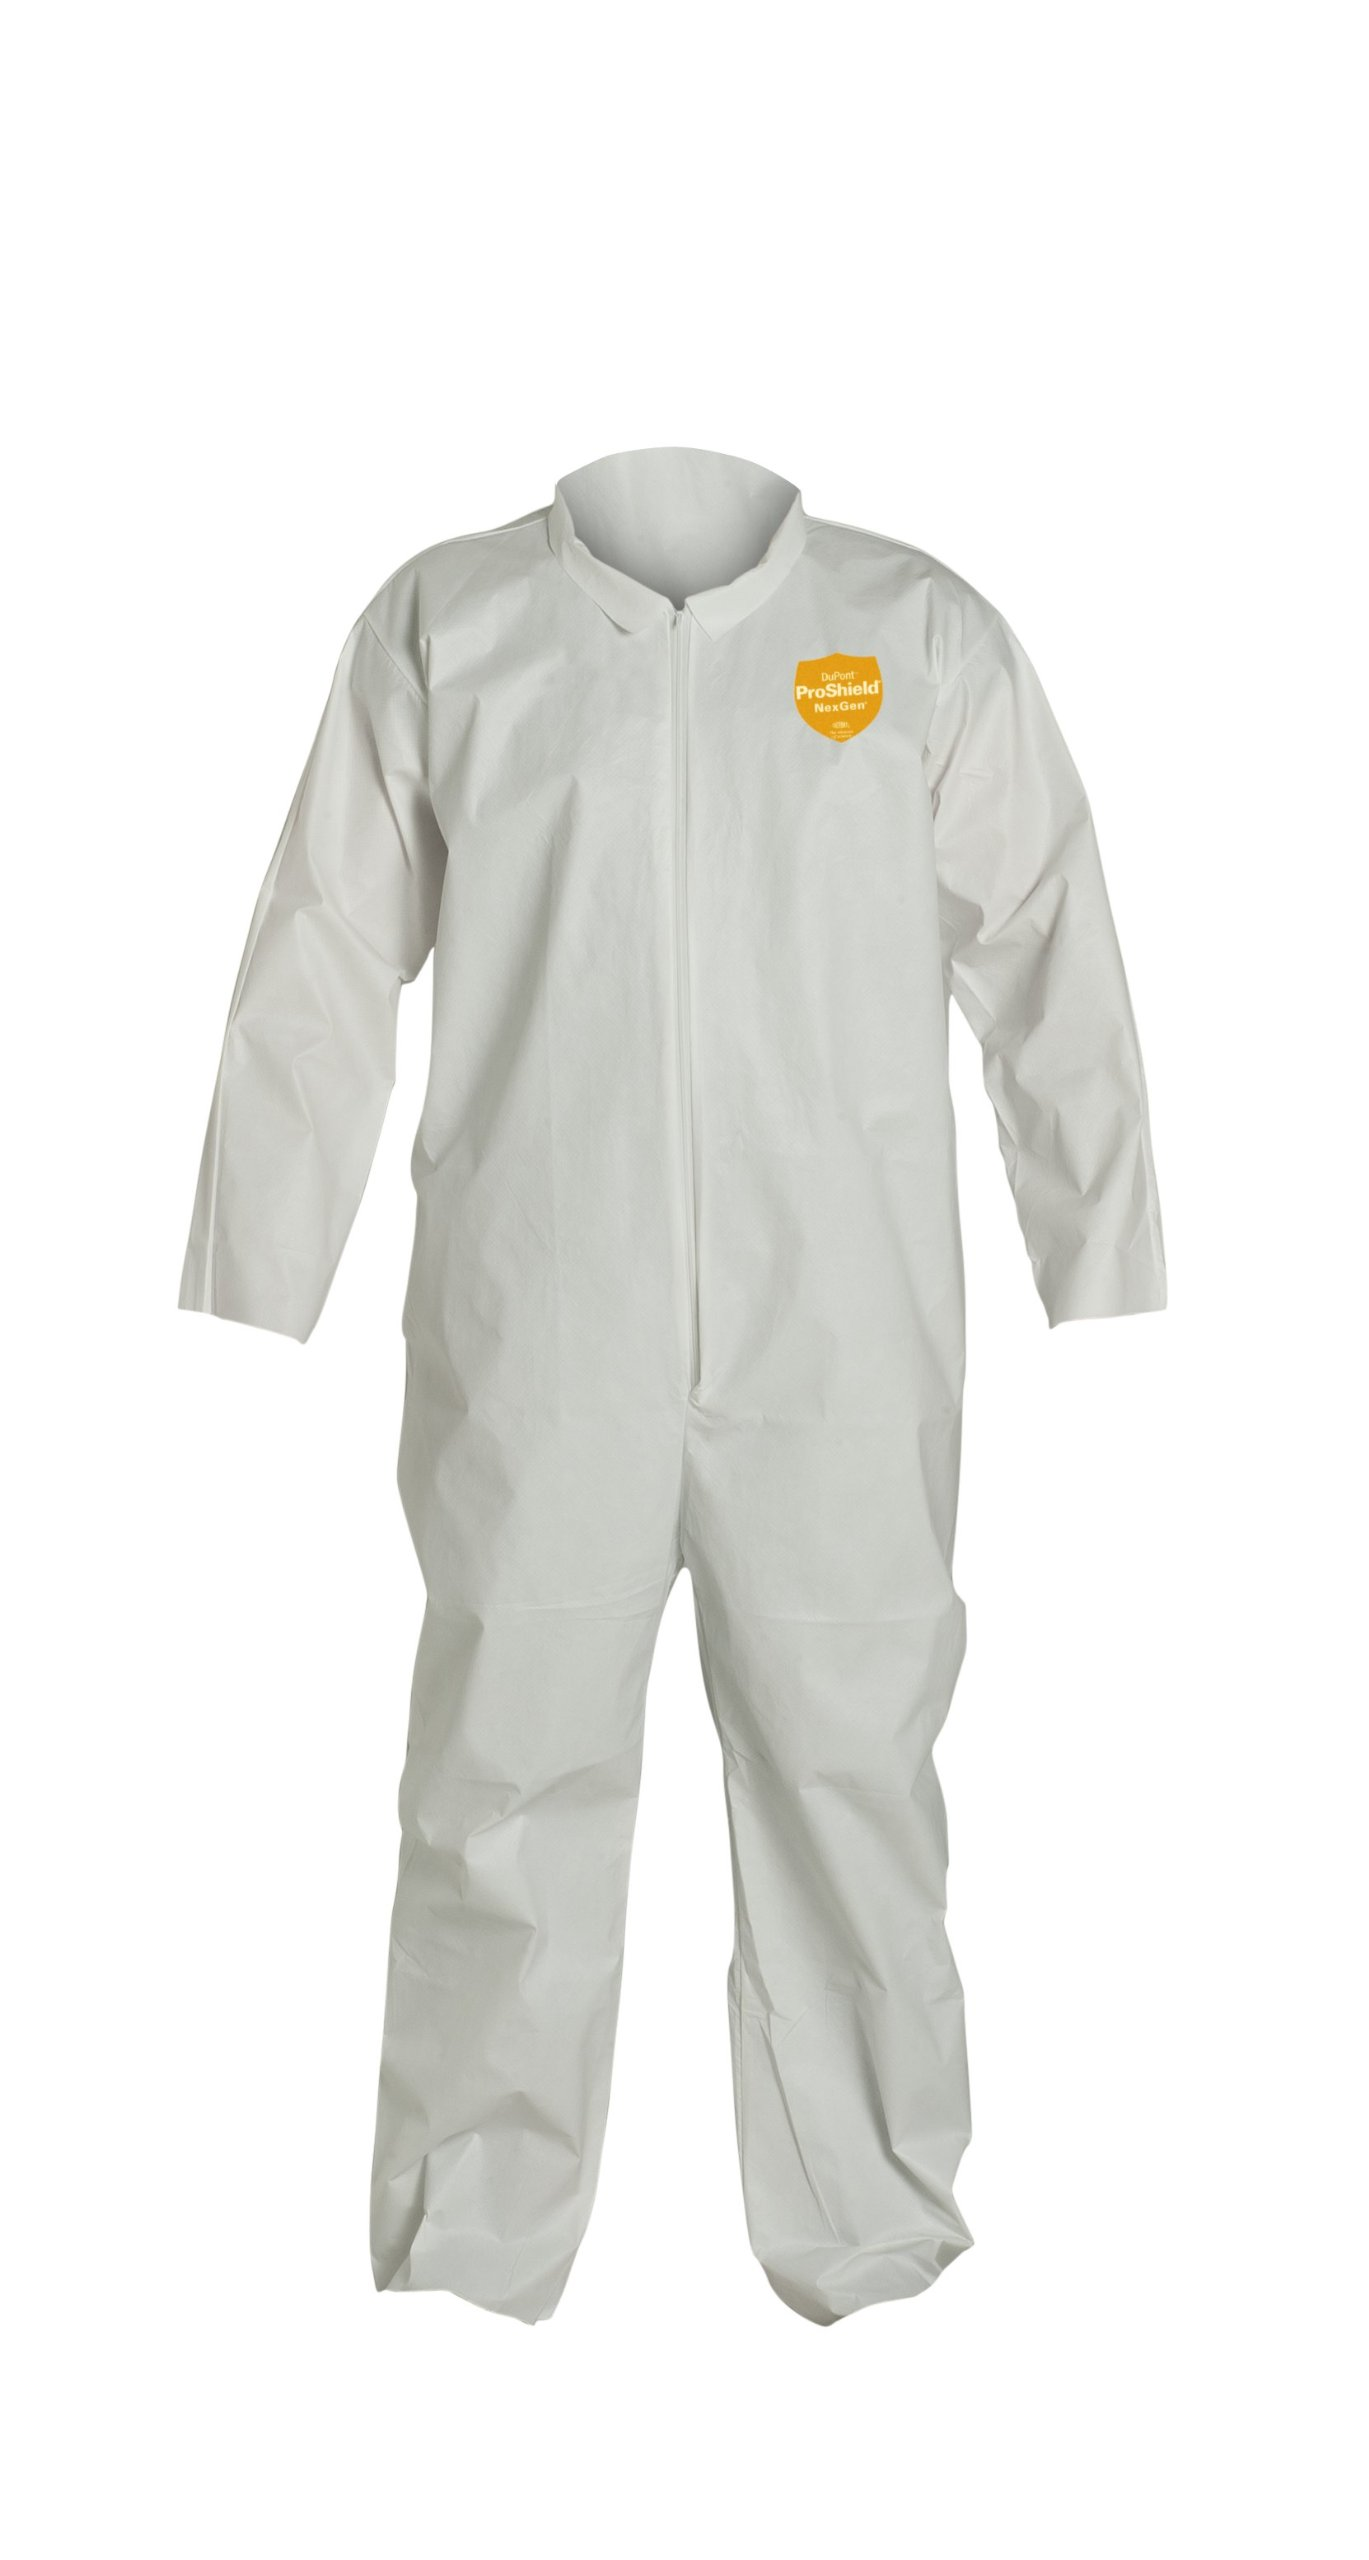 DuPont ProShield Disposable Protective Coverall with Open Cuff White 2X-Large 25-Pack